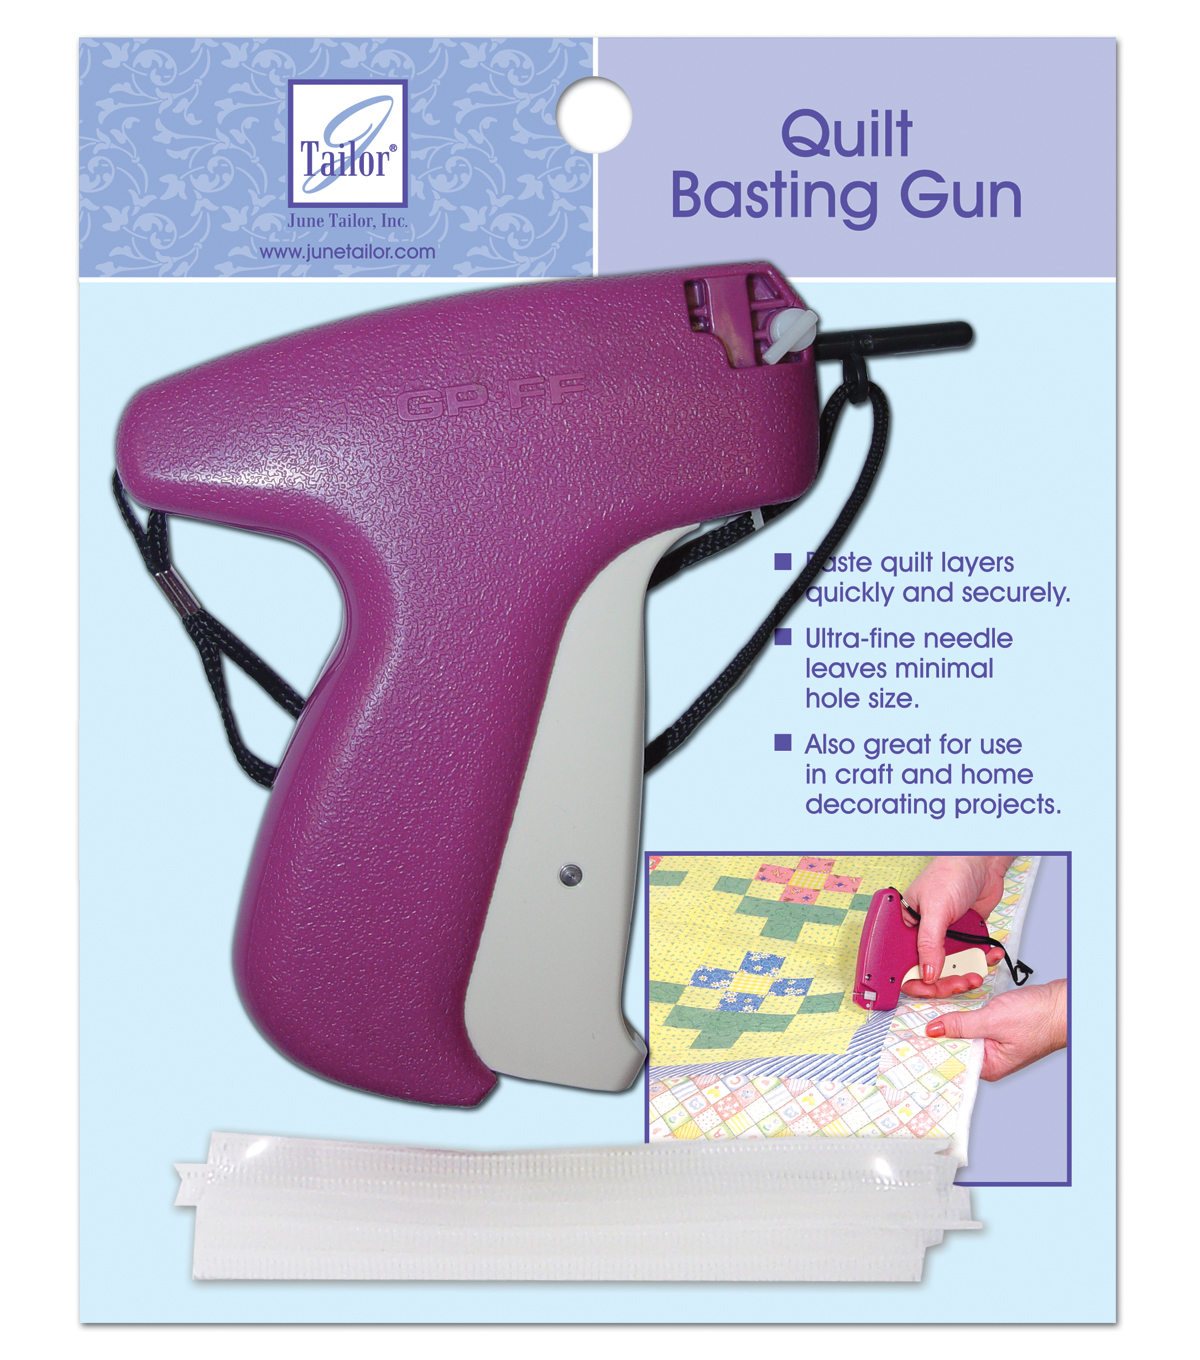 June Tailor Quilter's Basting Gun with 500 Fasteners | JOANN : quilt tacking - Adamdwight.com